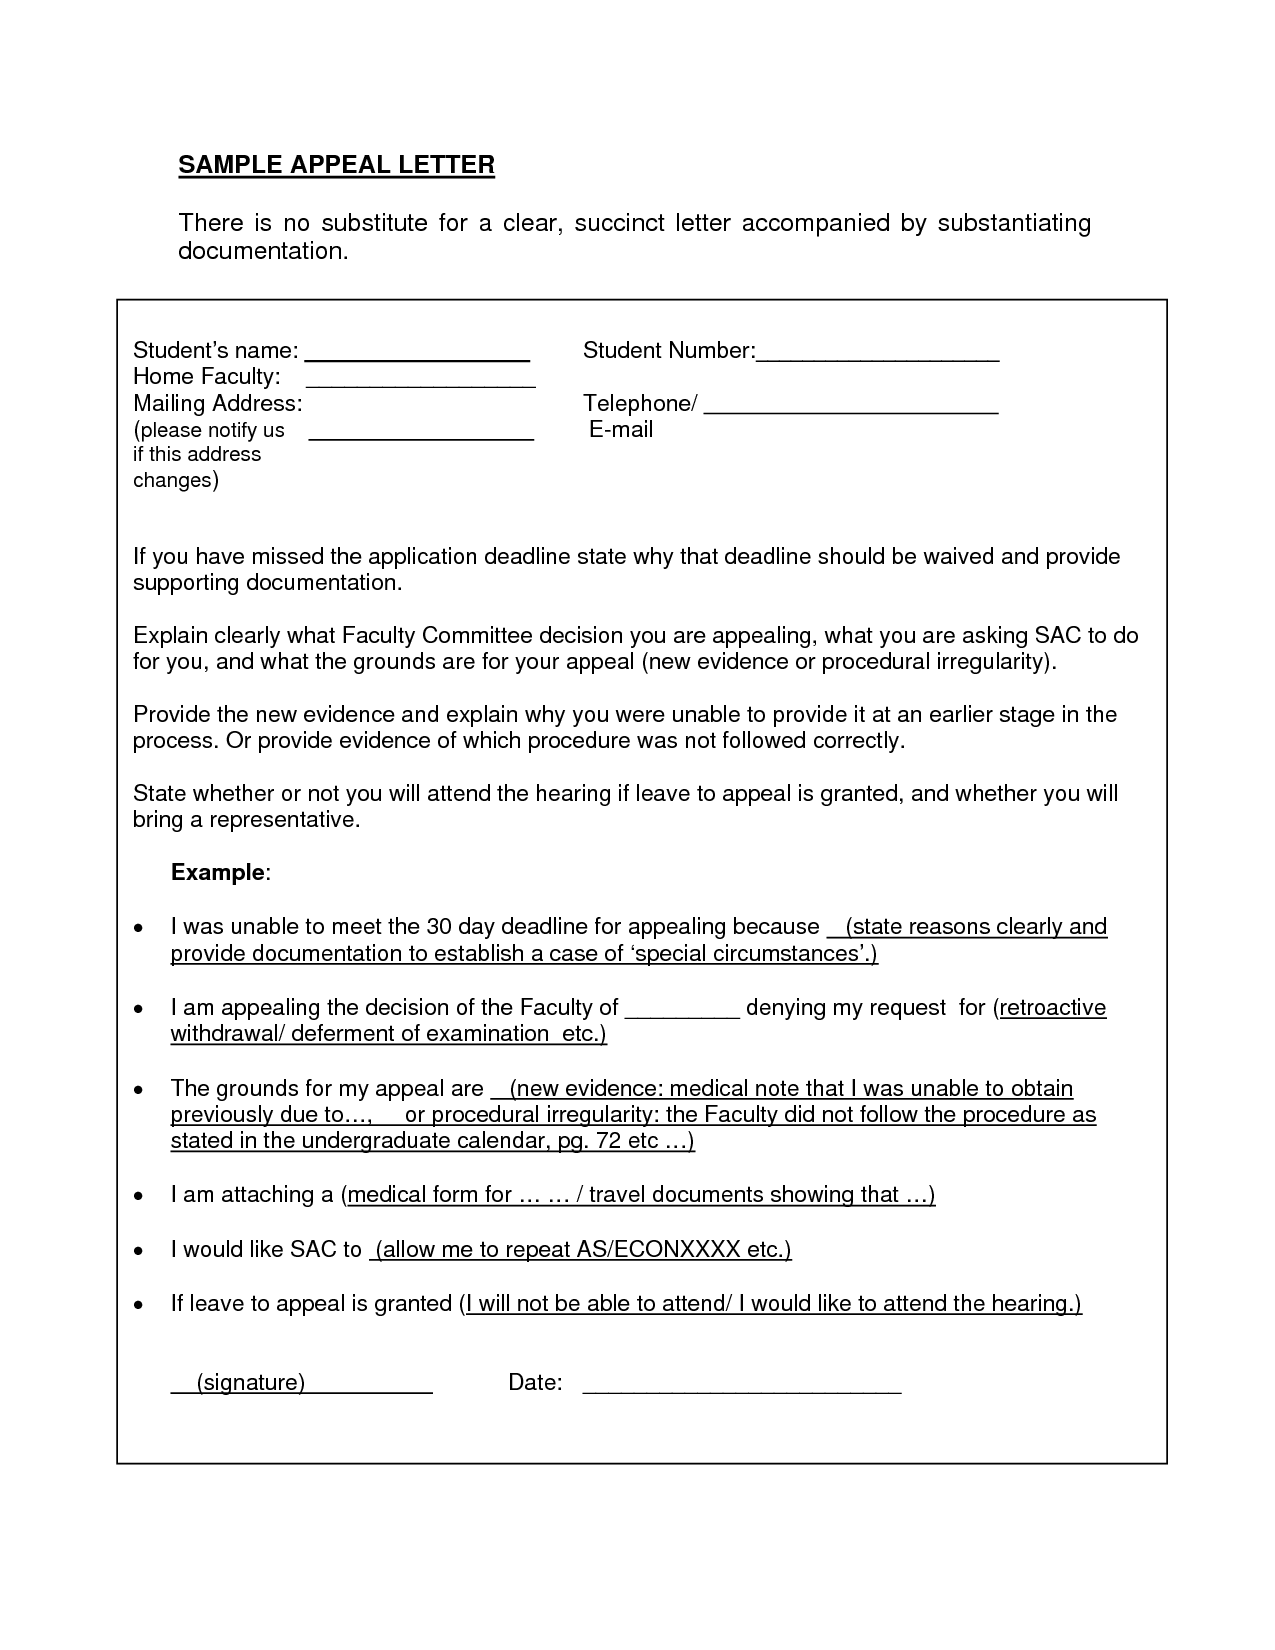 appeal letter sample for medical necessity 10 academic probation – Example of Appeal Letter